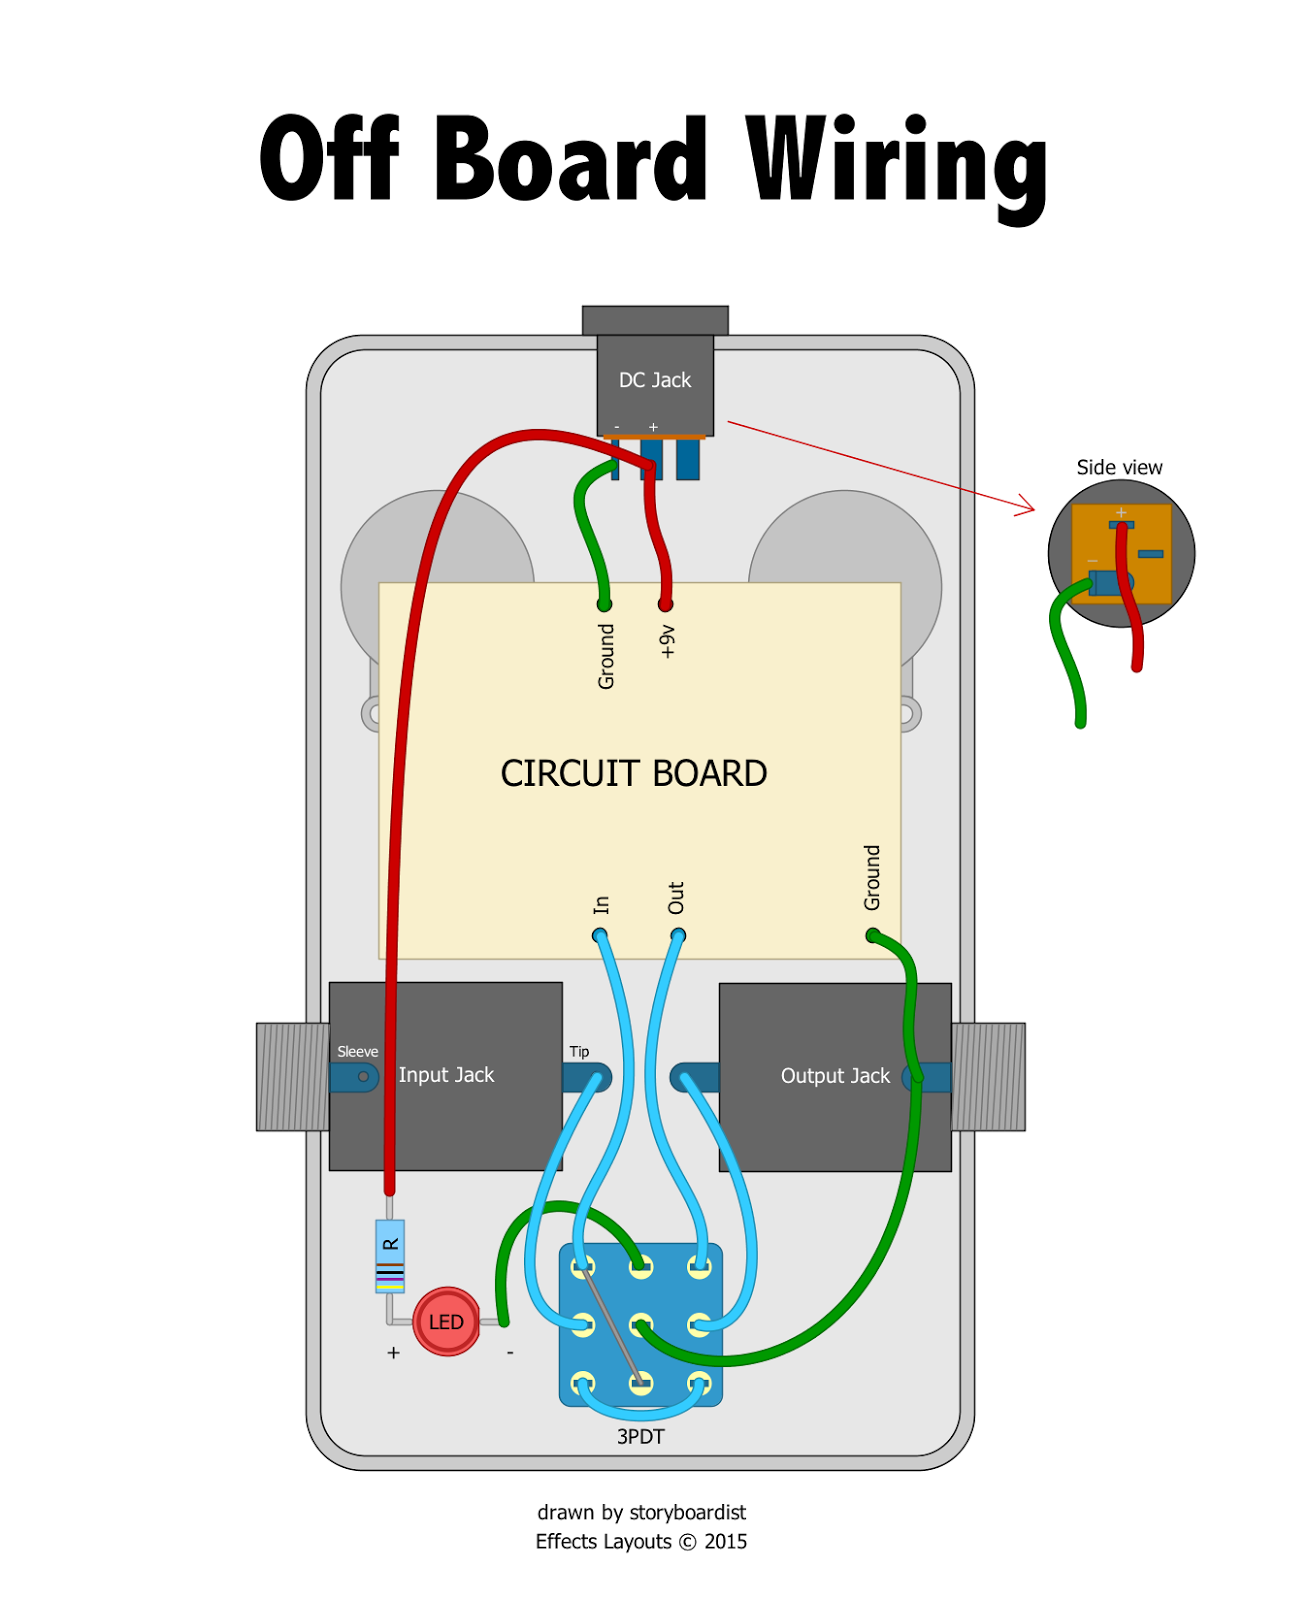 perf and pcb effects layouts general layout notes rh effectslayouts blogspot com g27 pedal wiring diagram accelerator pedal wiring diagram